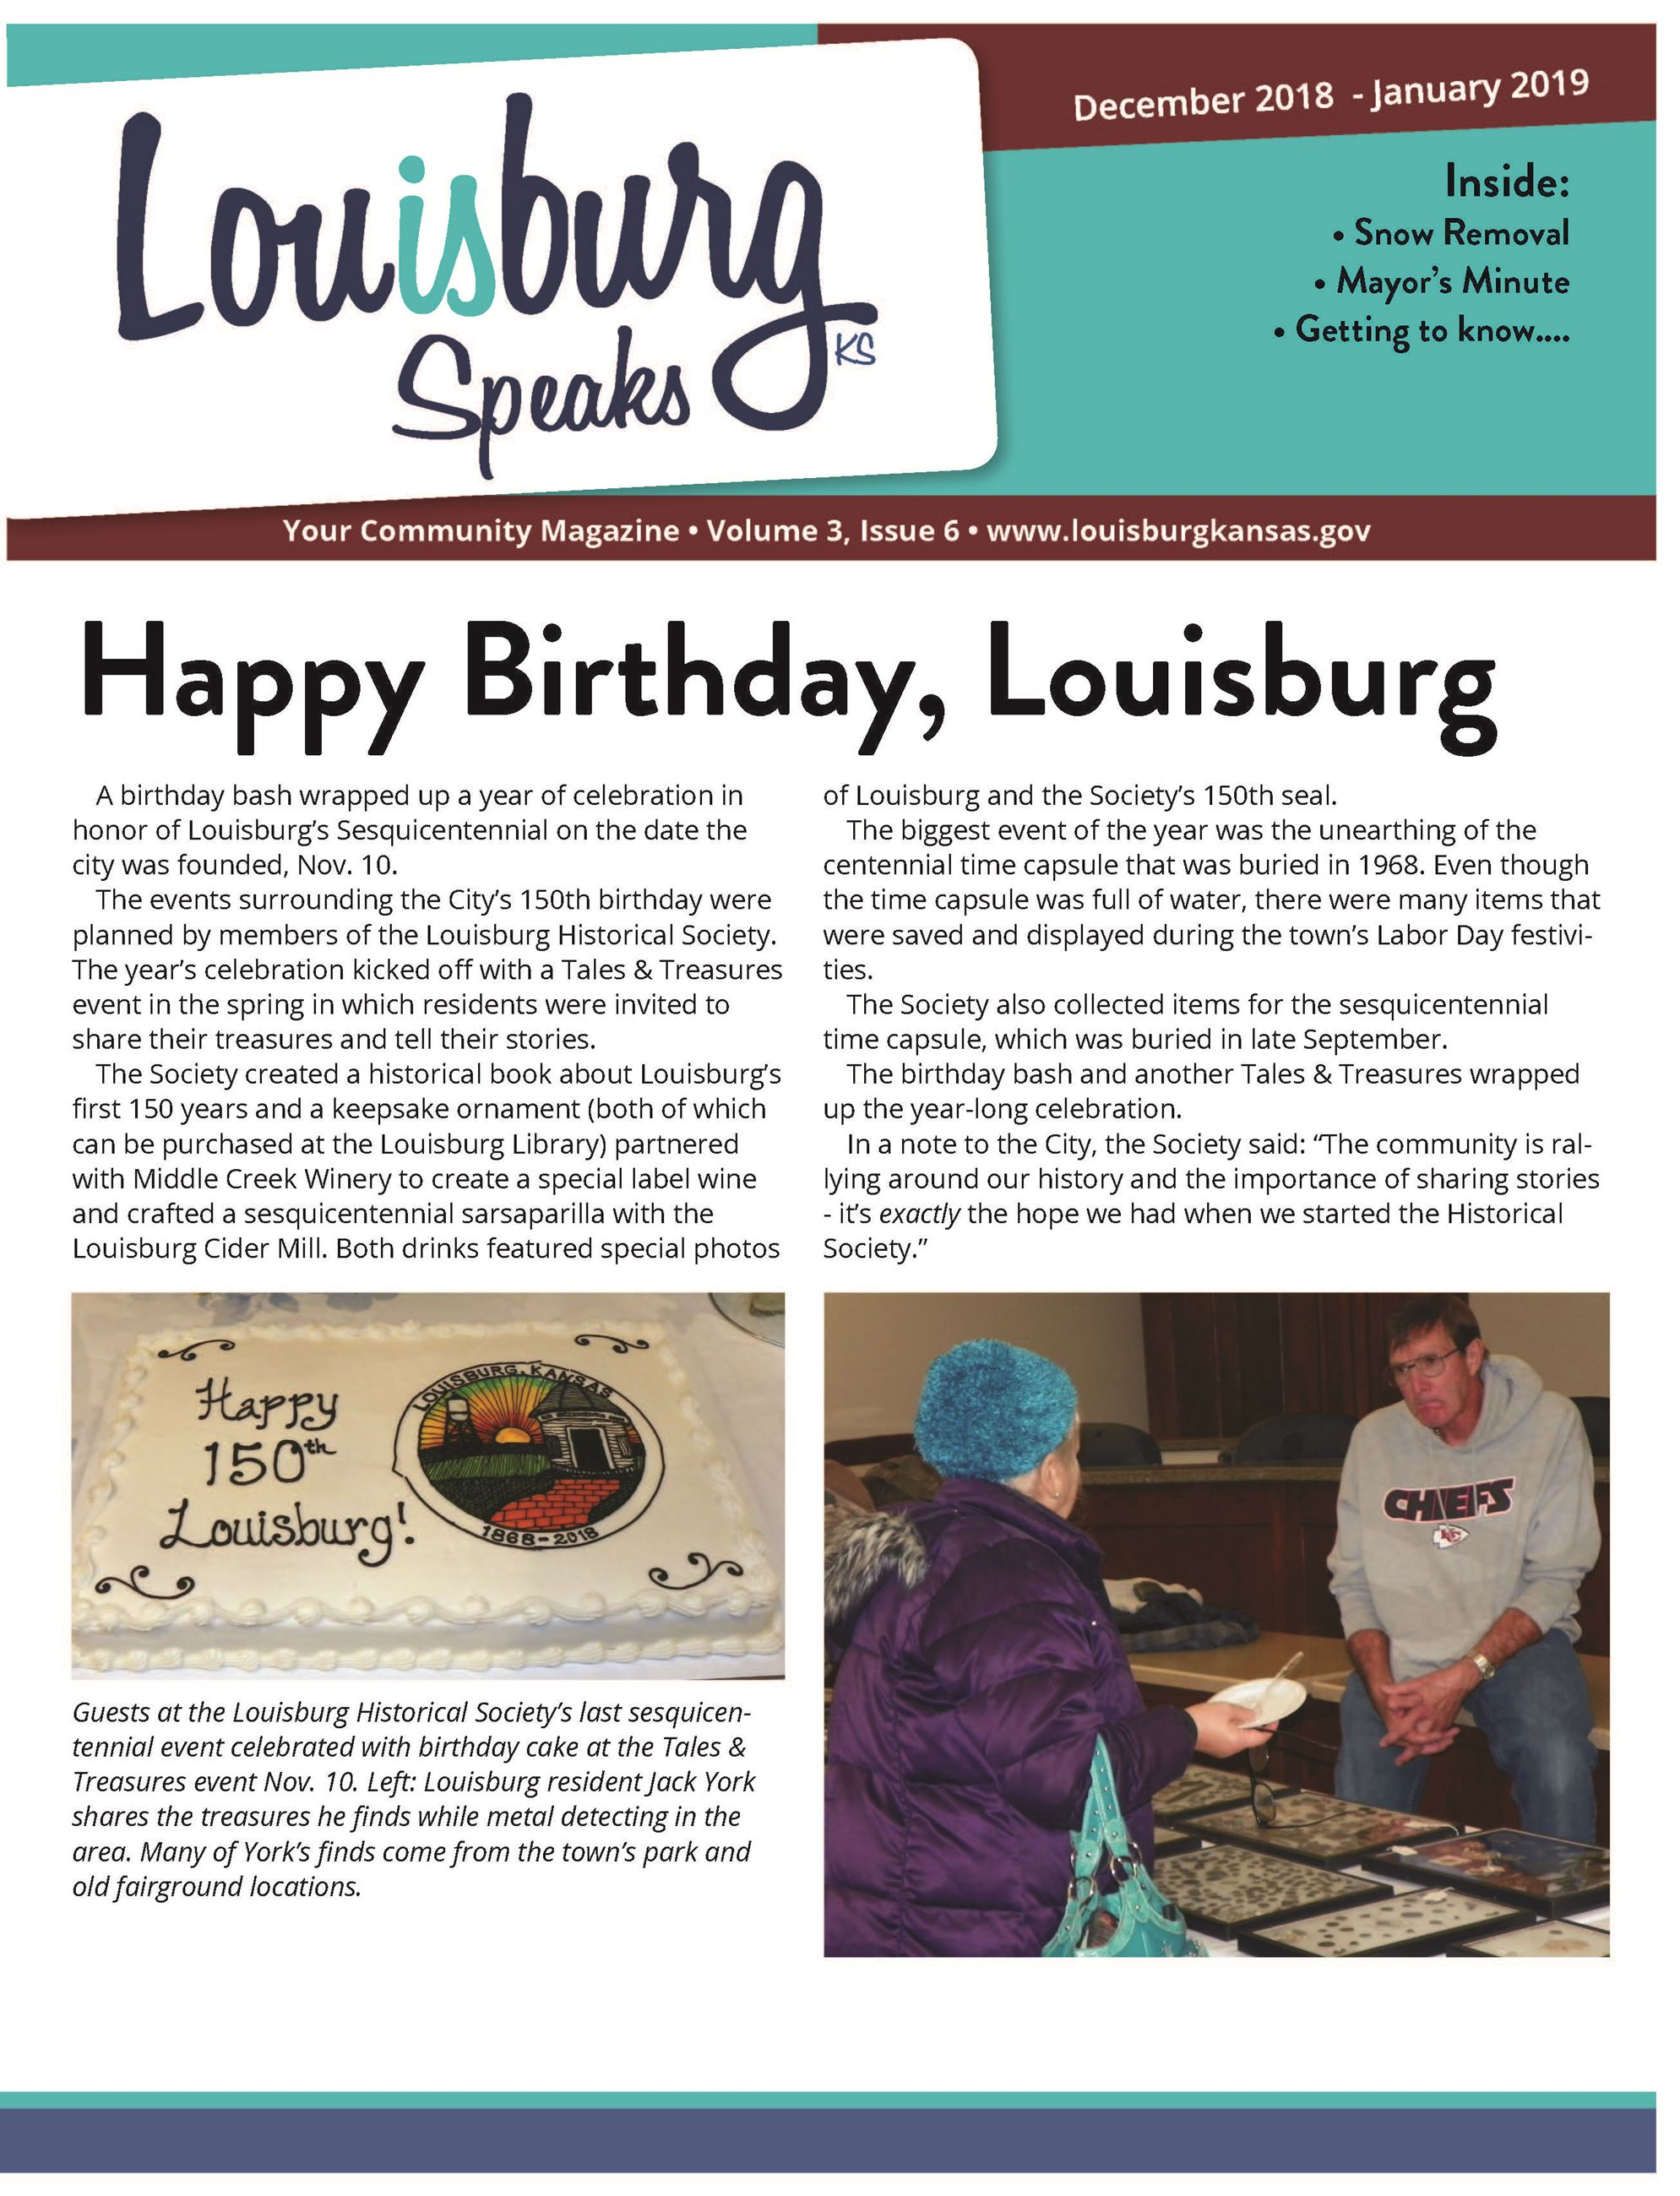 A screenshot of the front of the newsletter